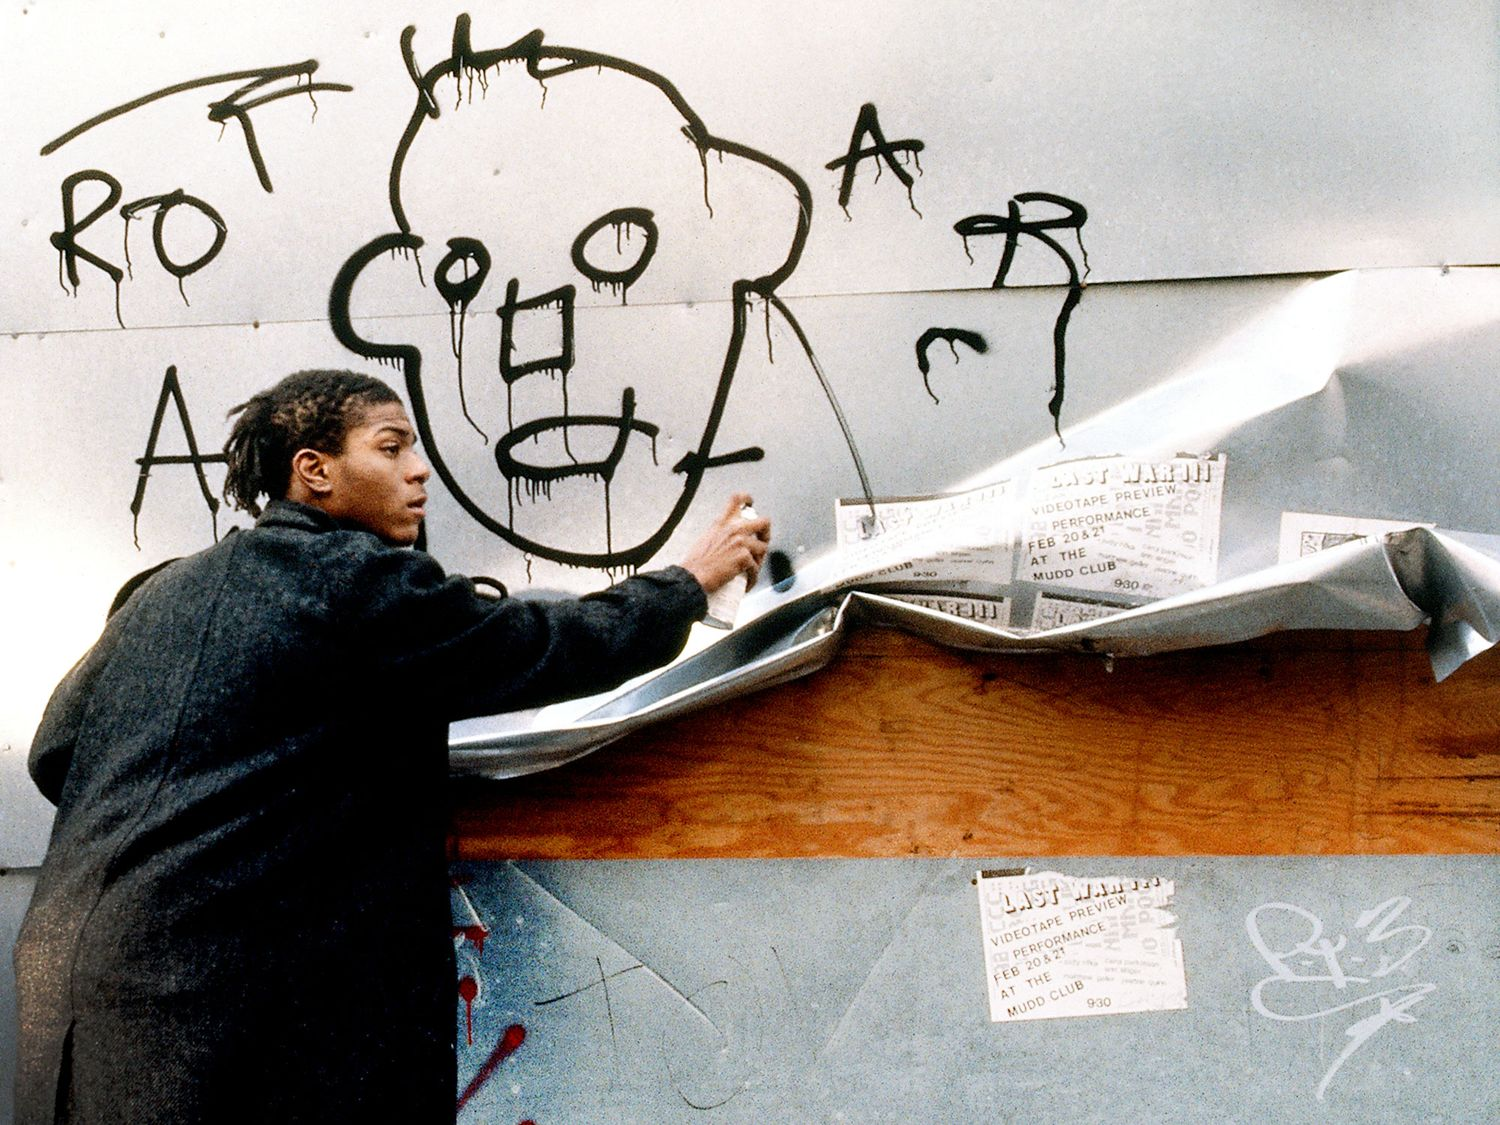 Jean-Michel Basquiat caught in the act of spray painting in the streets of New York for the film Downtown 81 produced between 1980-81 but only broadcasted in 2001 (image taken from the film).